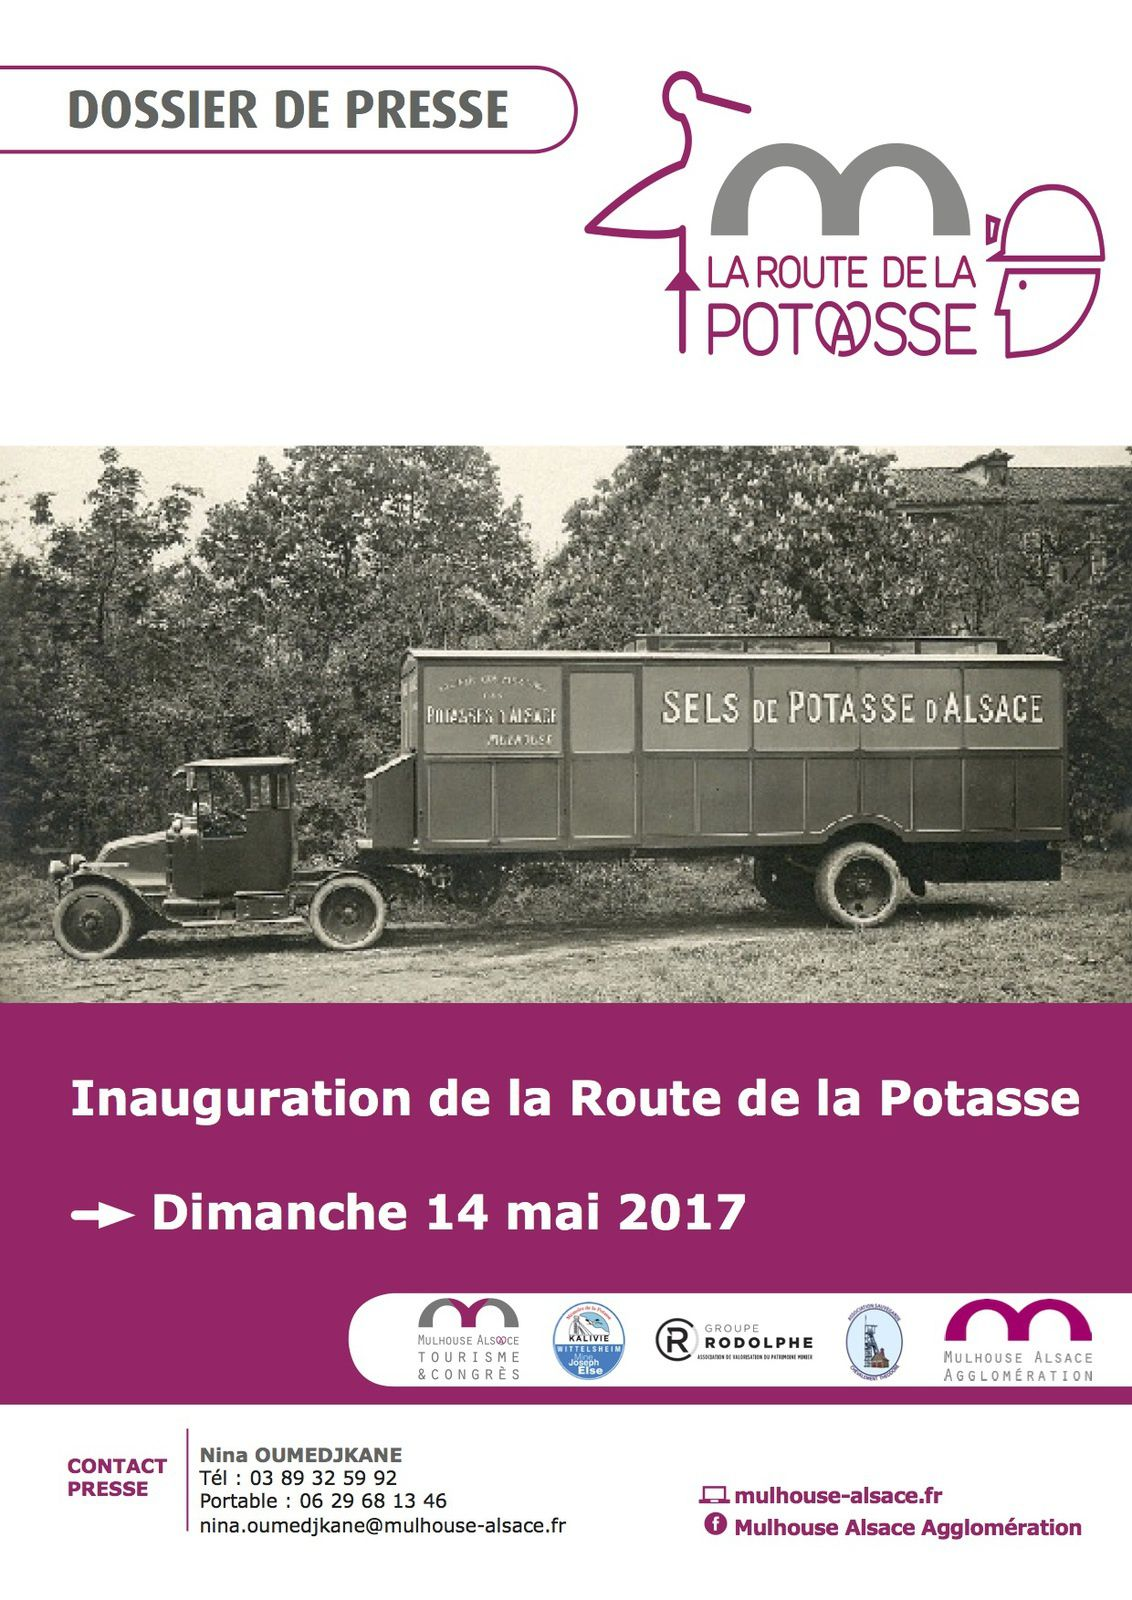 La Route de la Potasse